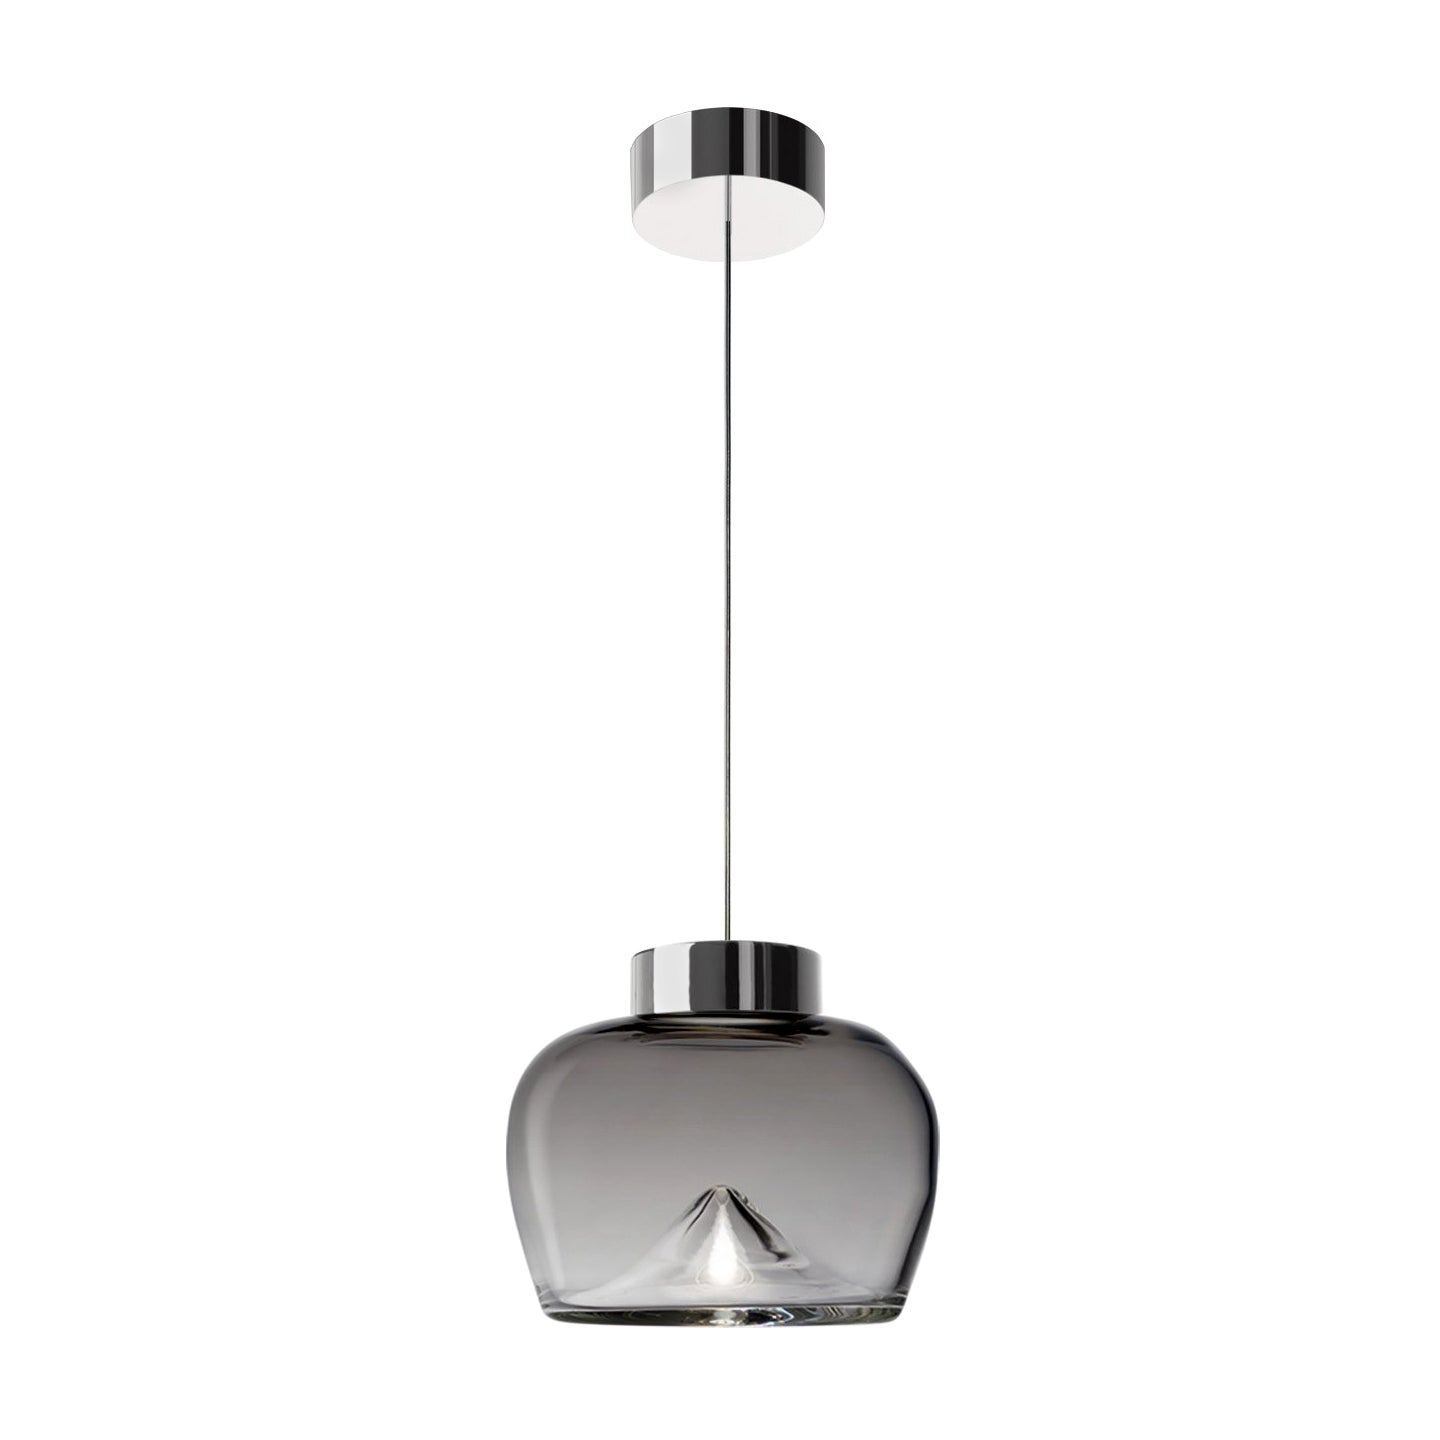 Leucos Aella Bold S LED Pendant Light in Smoke Gray and Chrome by Toso & Massari